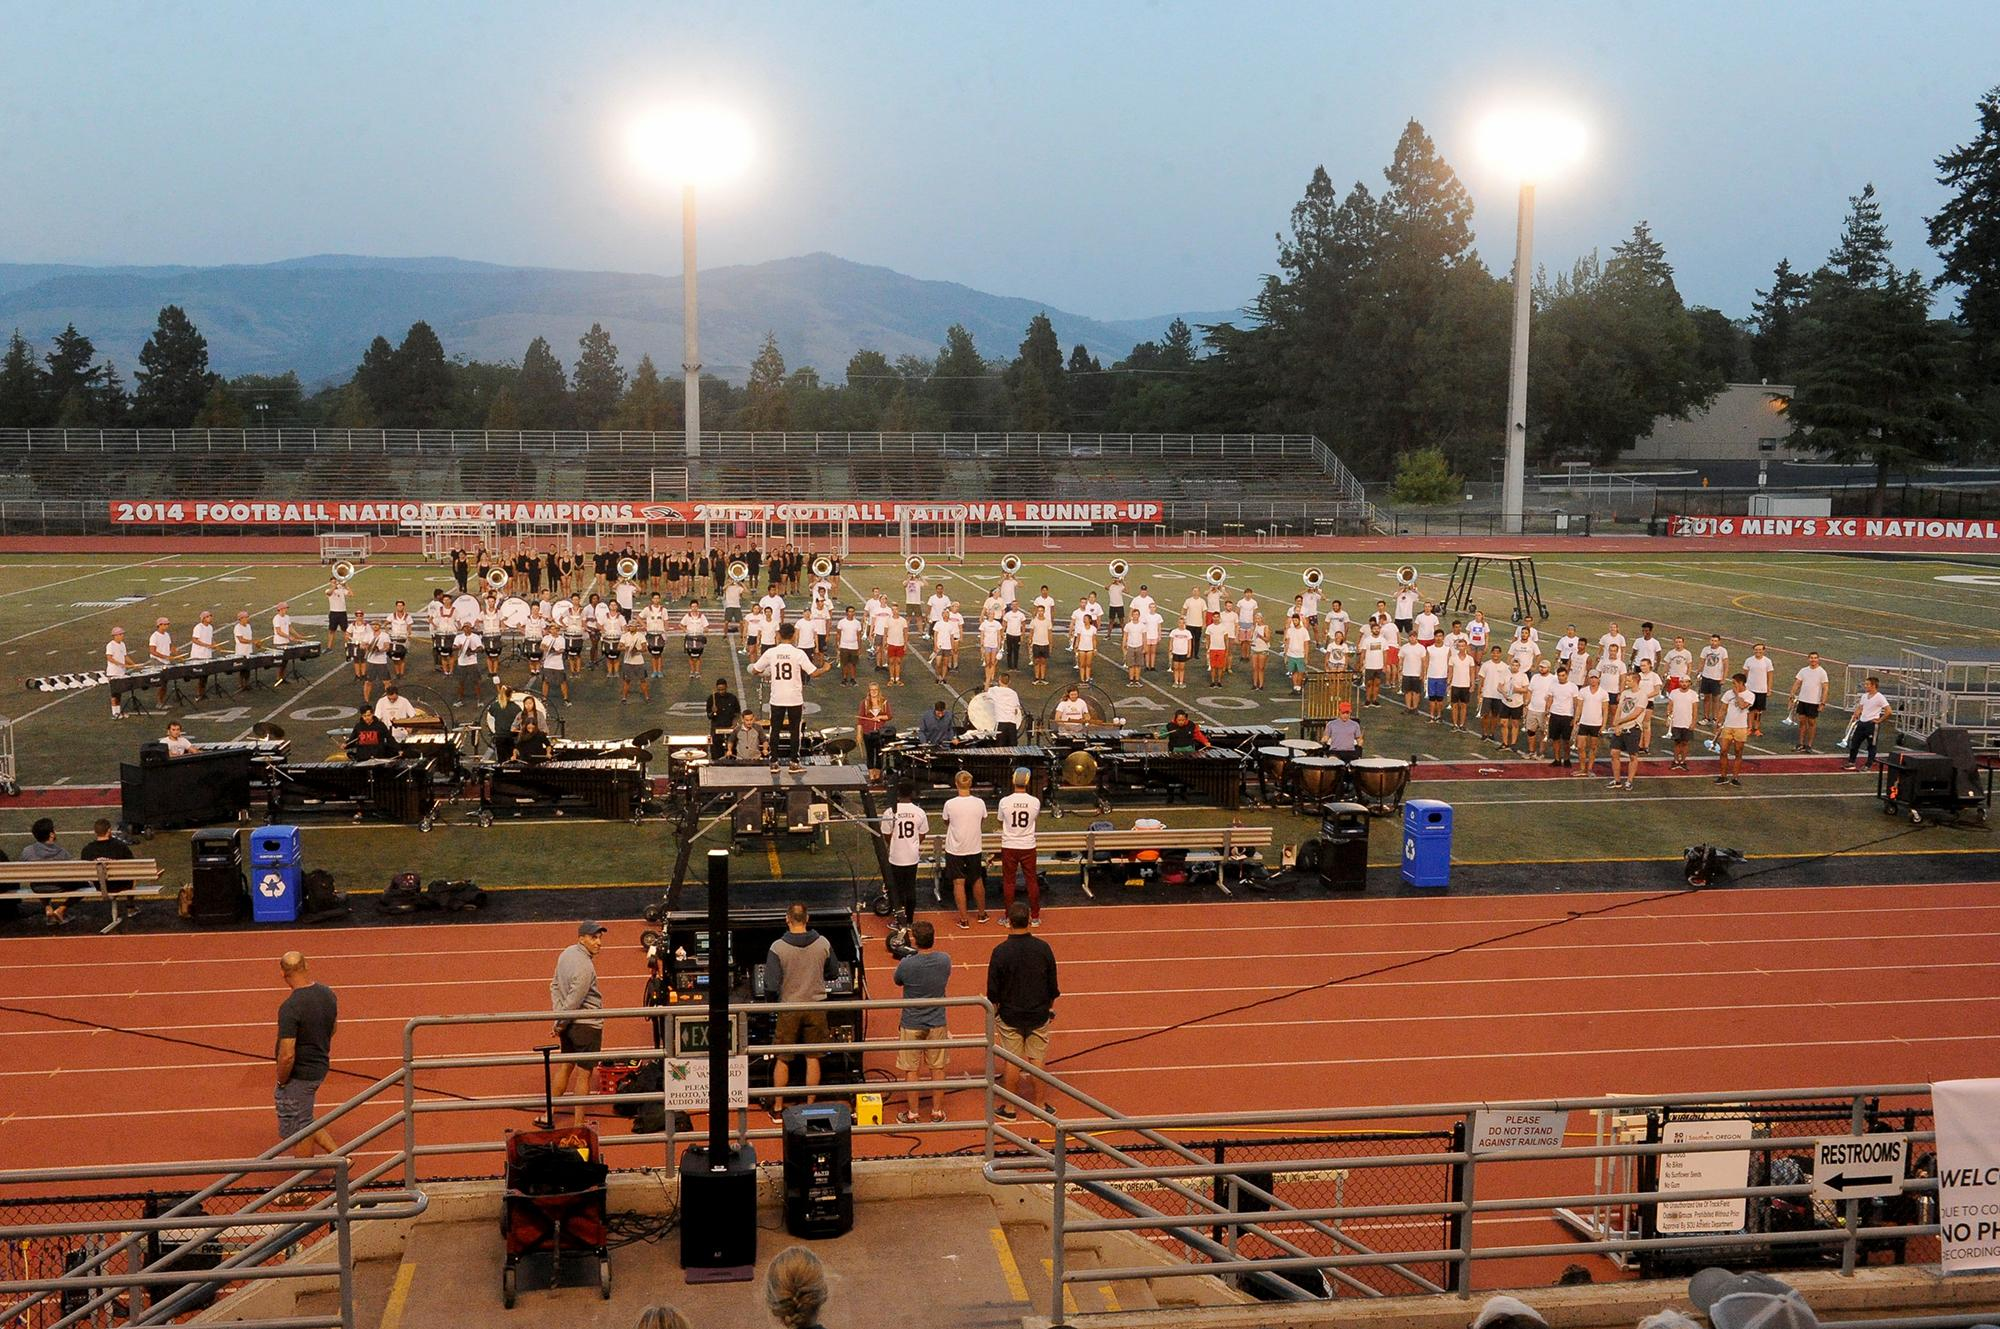 The Santa Clara Vanguard Drum and Bugle Corps gives a free performace Thursday at Raider Stadium. Photo by Denise Baratta